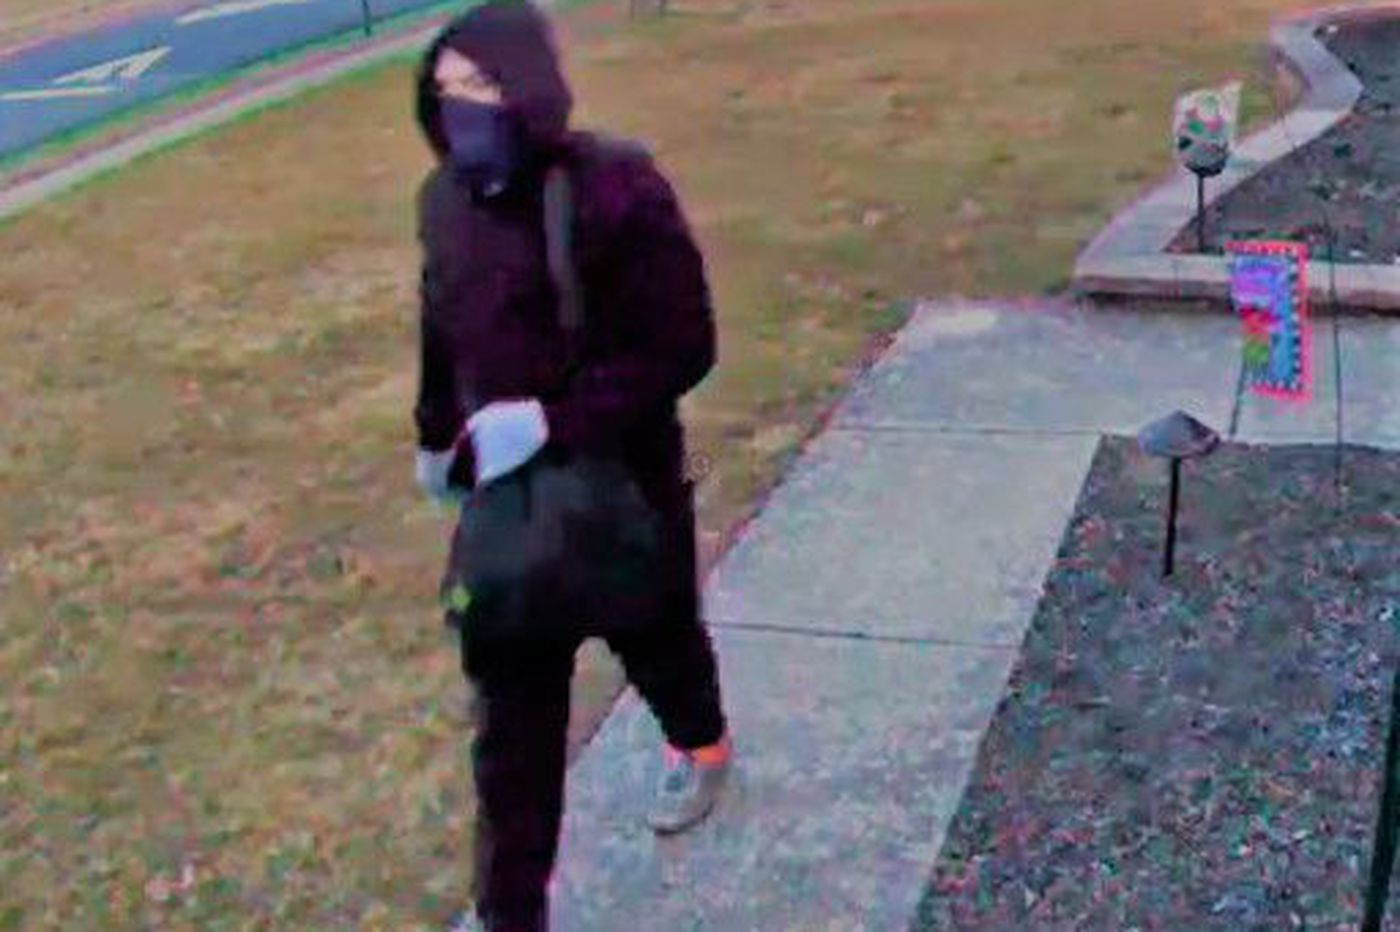 1,000 vehicles targeted for theft in Bucks County and New Jersey, authorities say